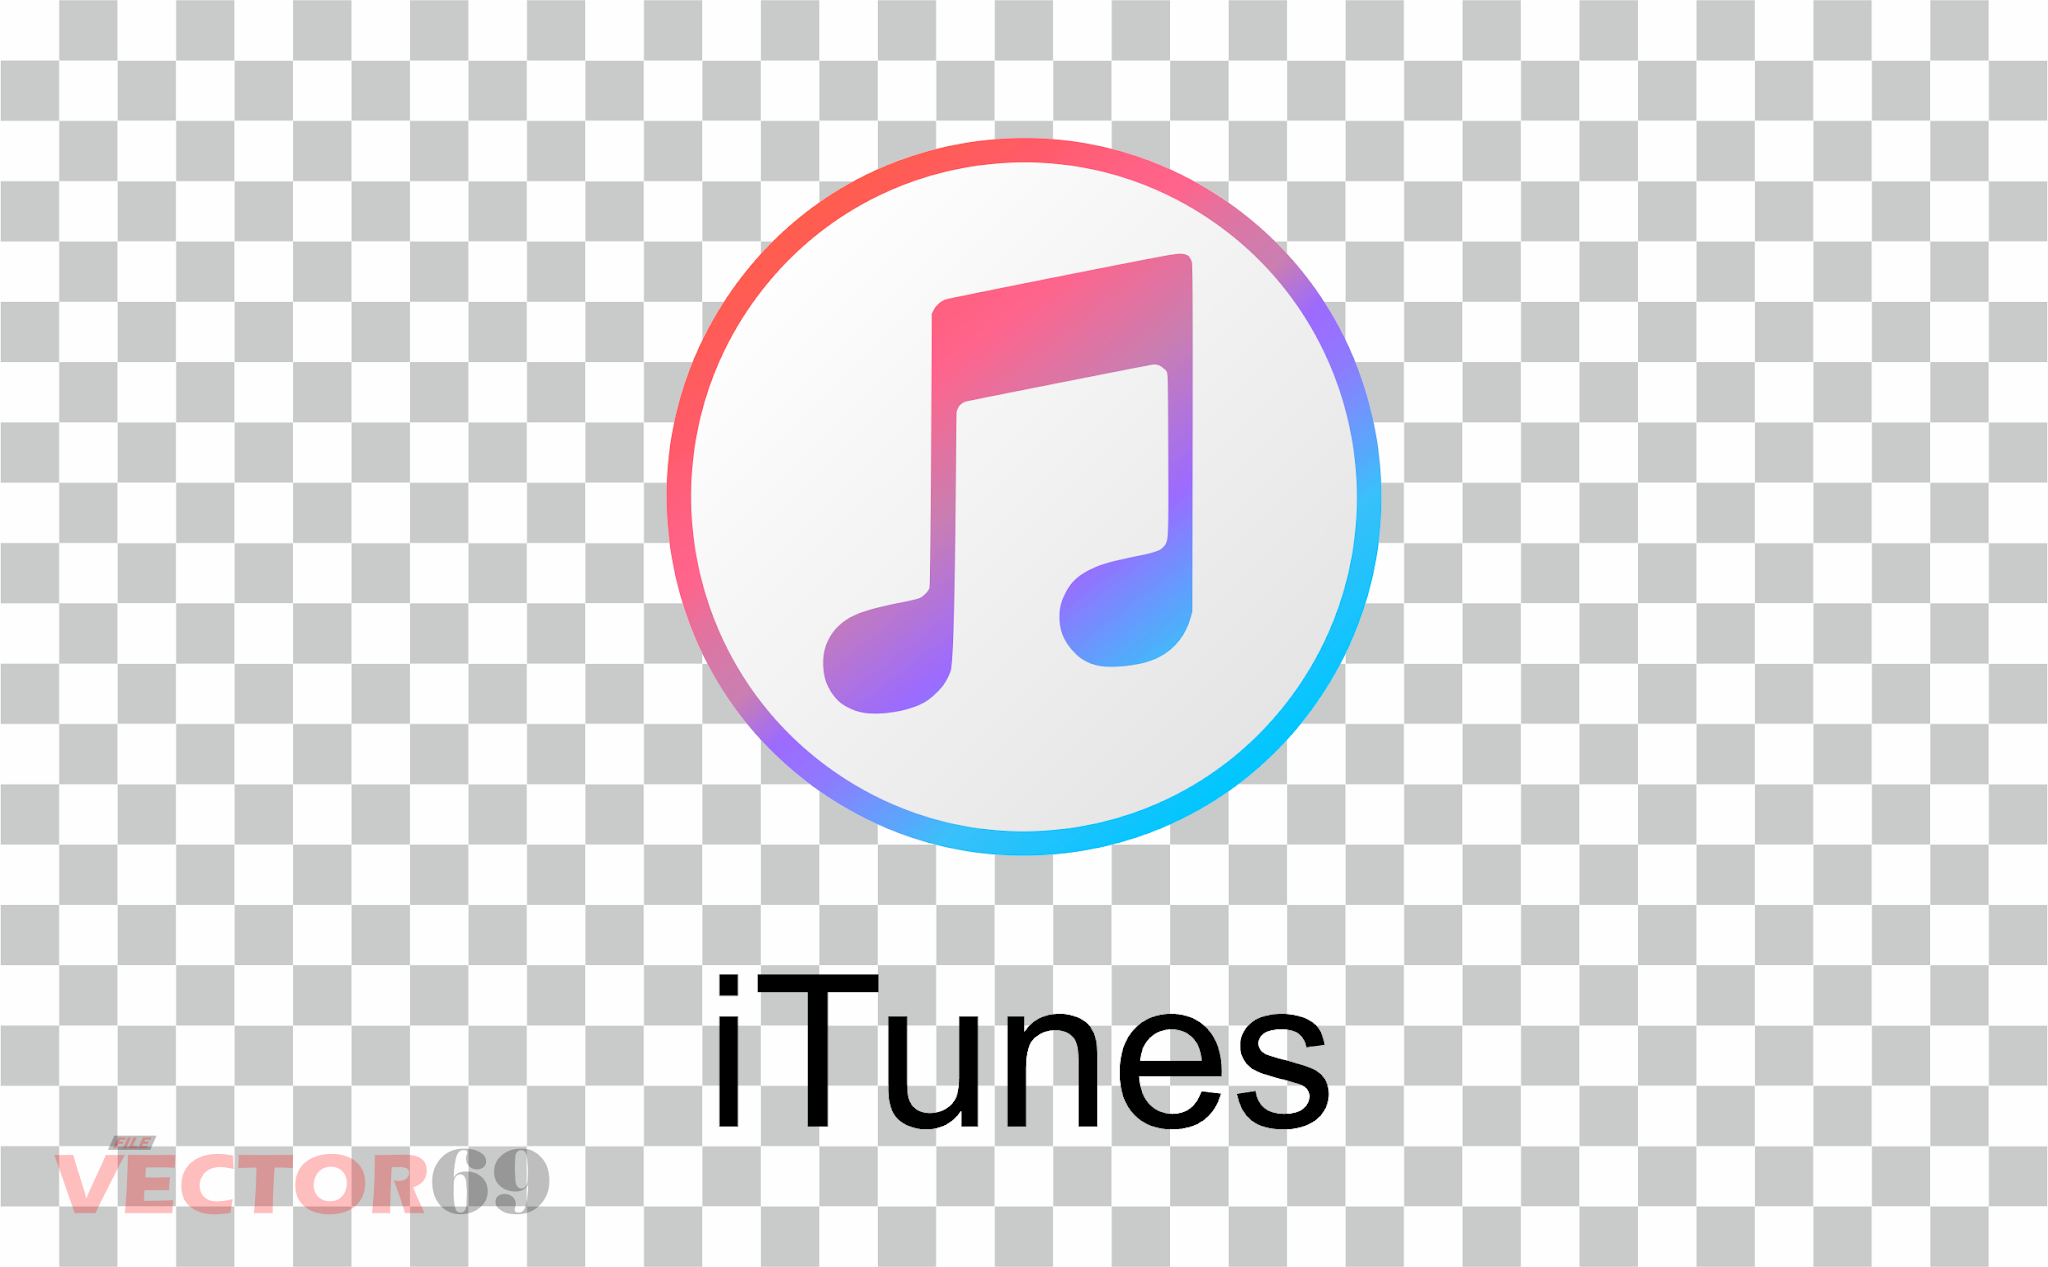 iTunes Logo - Download Vector File PNG (Portable Network Graphics)